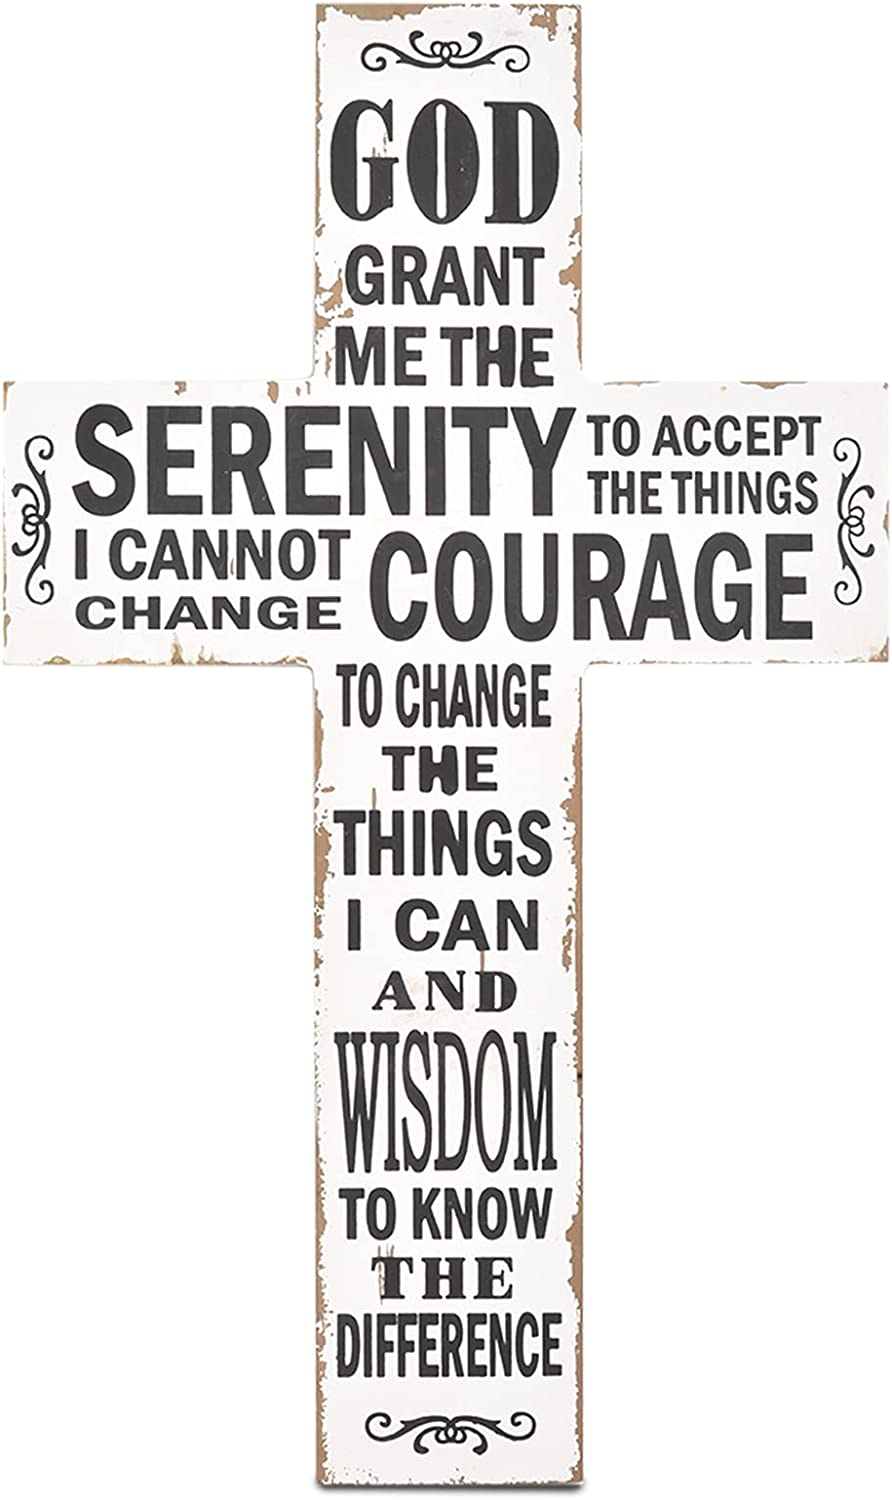 Handmade Crucifix Wall Cross with Serenity Prayer - White Wooden Cross - Rustic Decor Wall Cross for Home